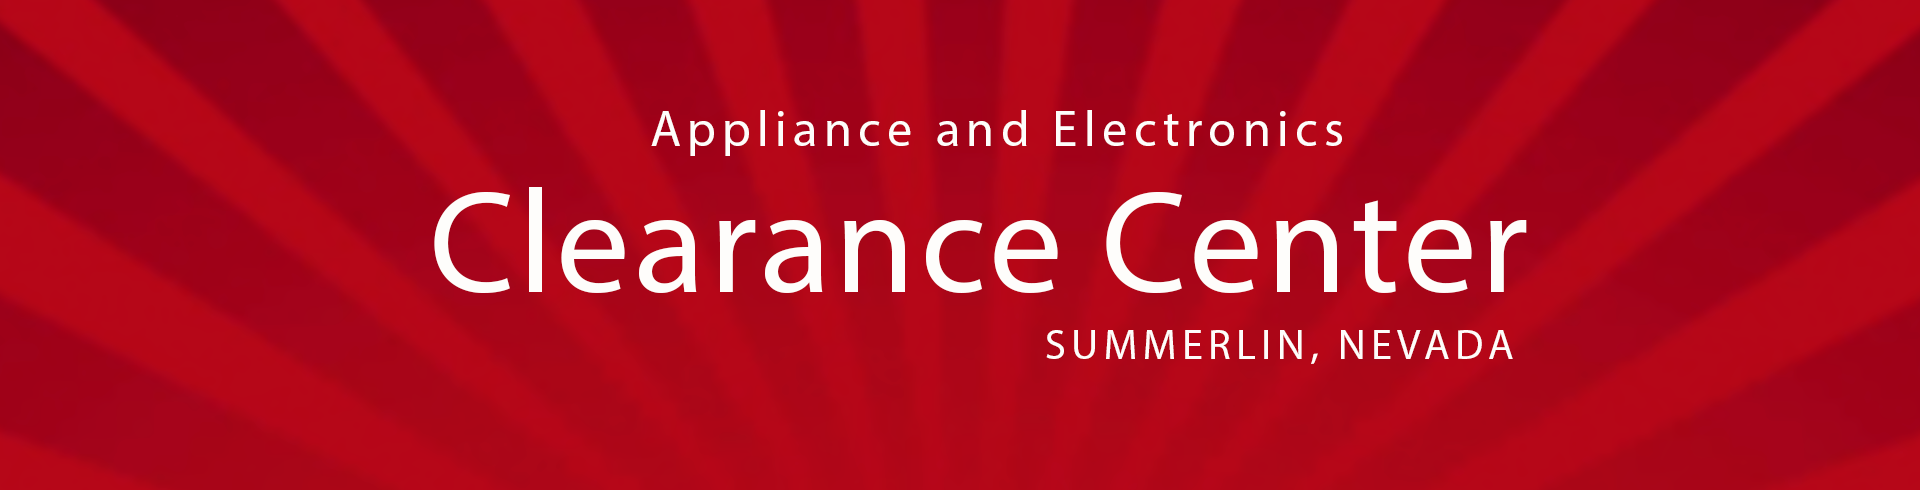 RC Willey Appliance Clearance Center in Summerlin, Nevada